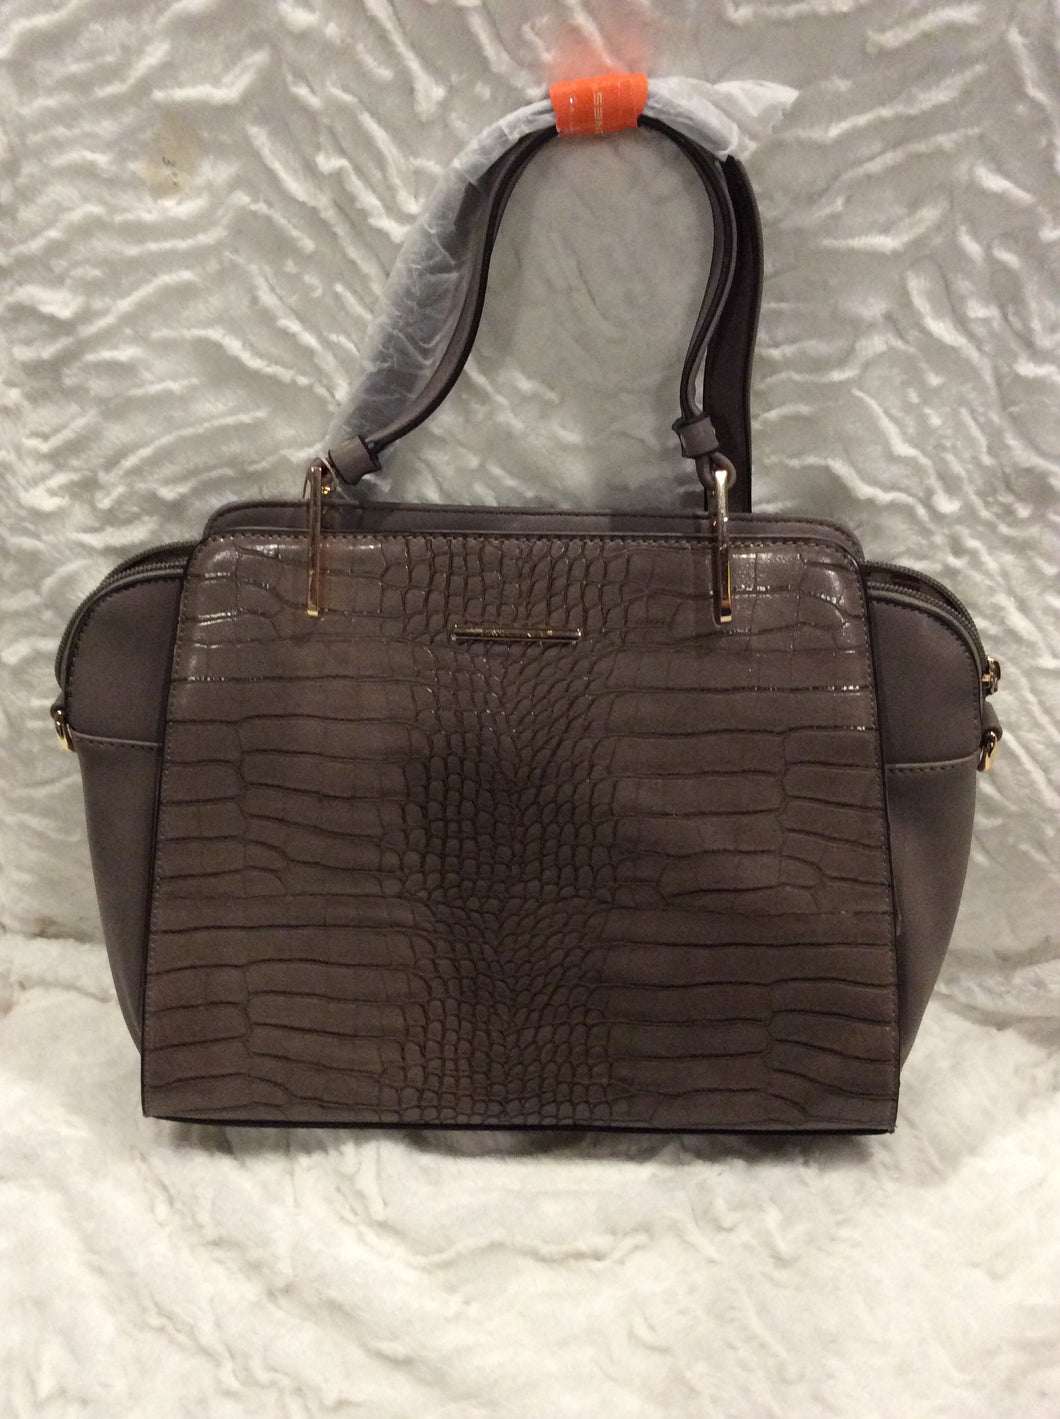 Taupe Leather Styled Handbag